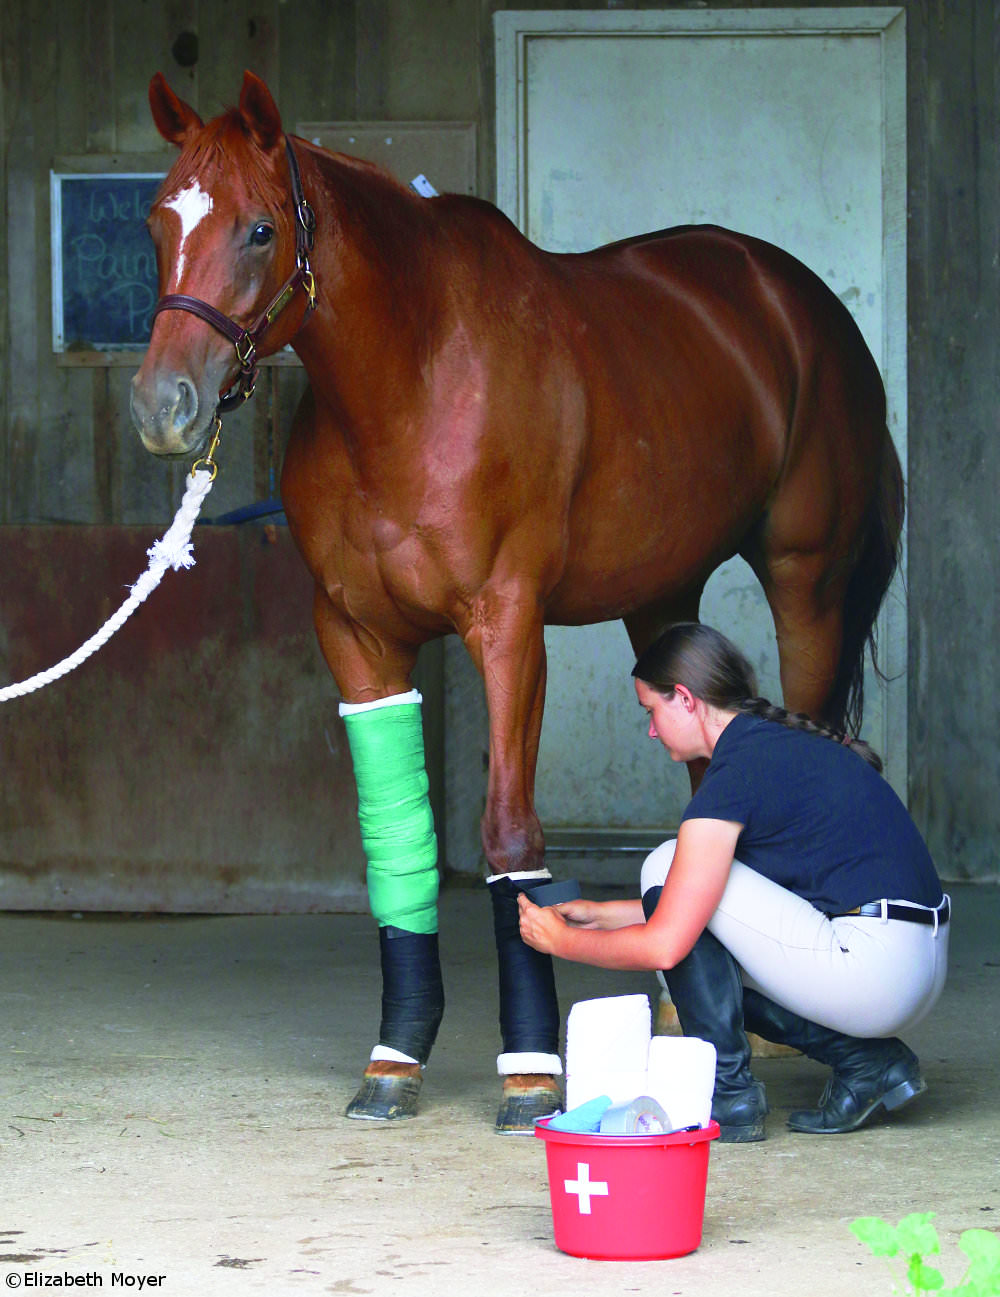 Wrapping a horse's leg